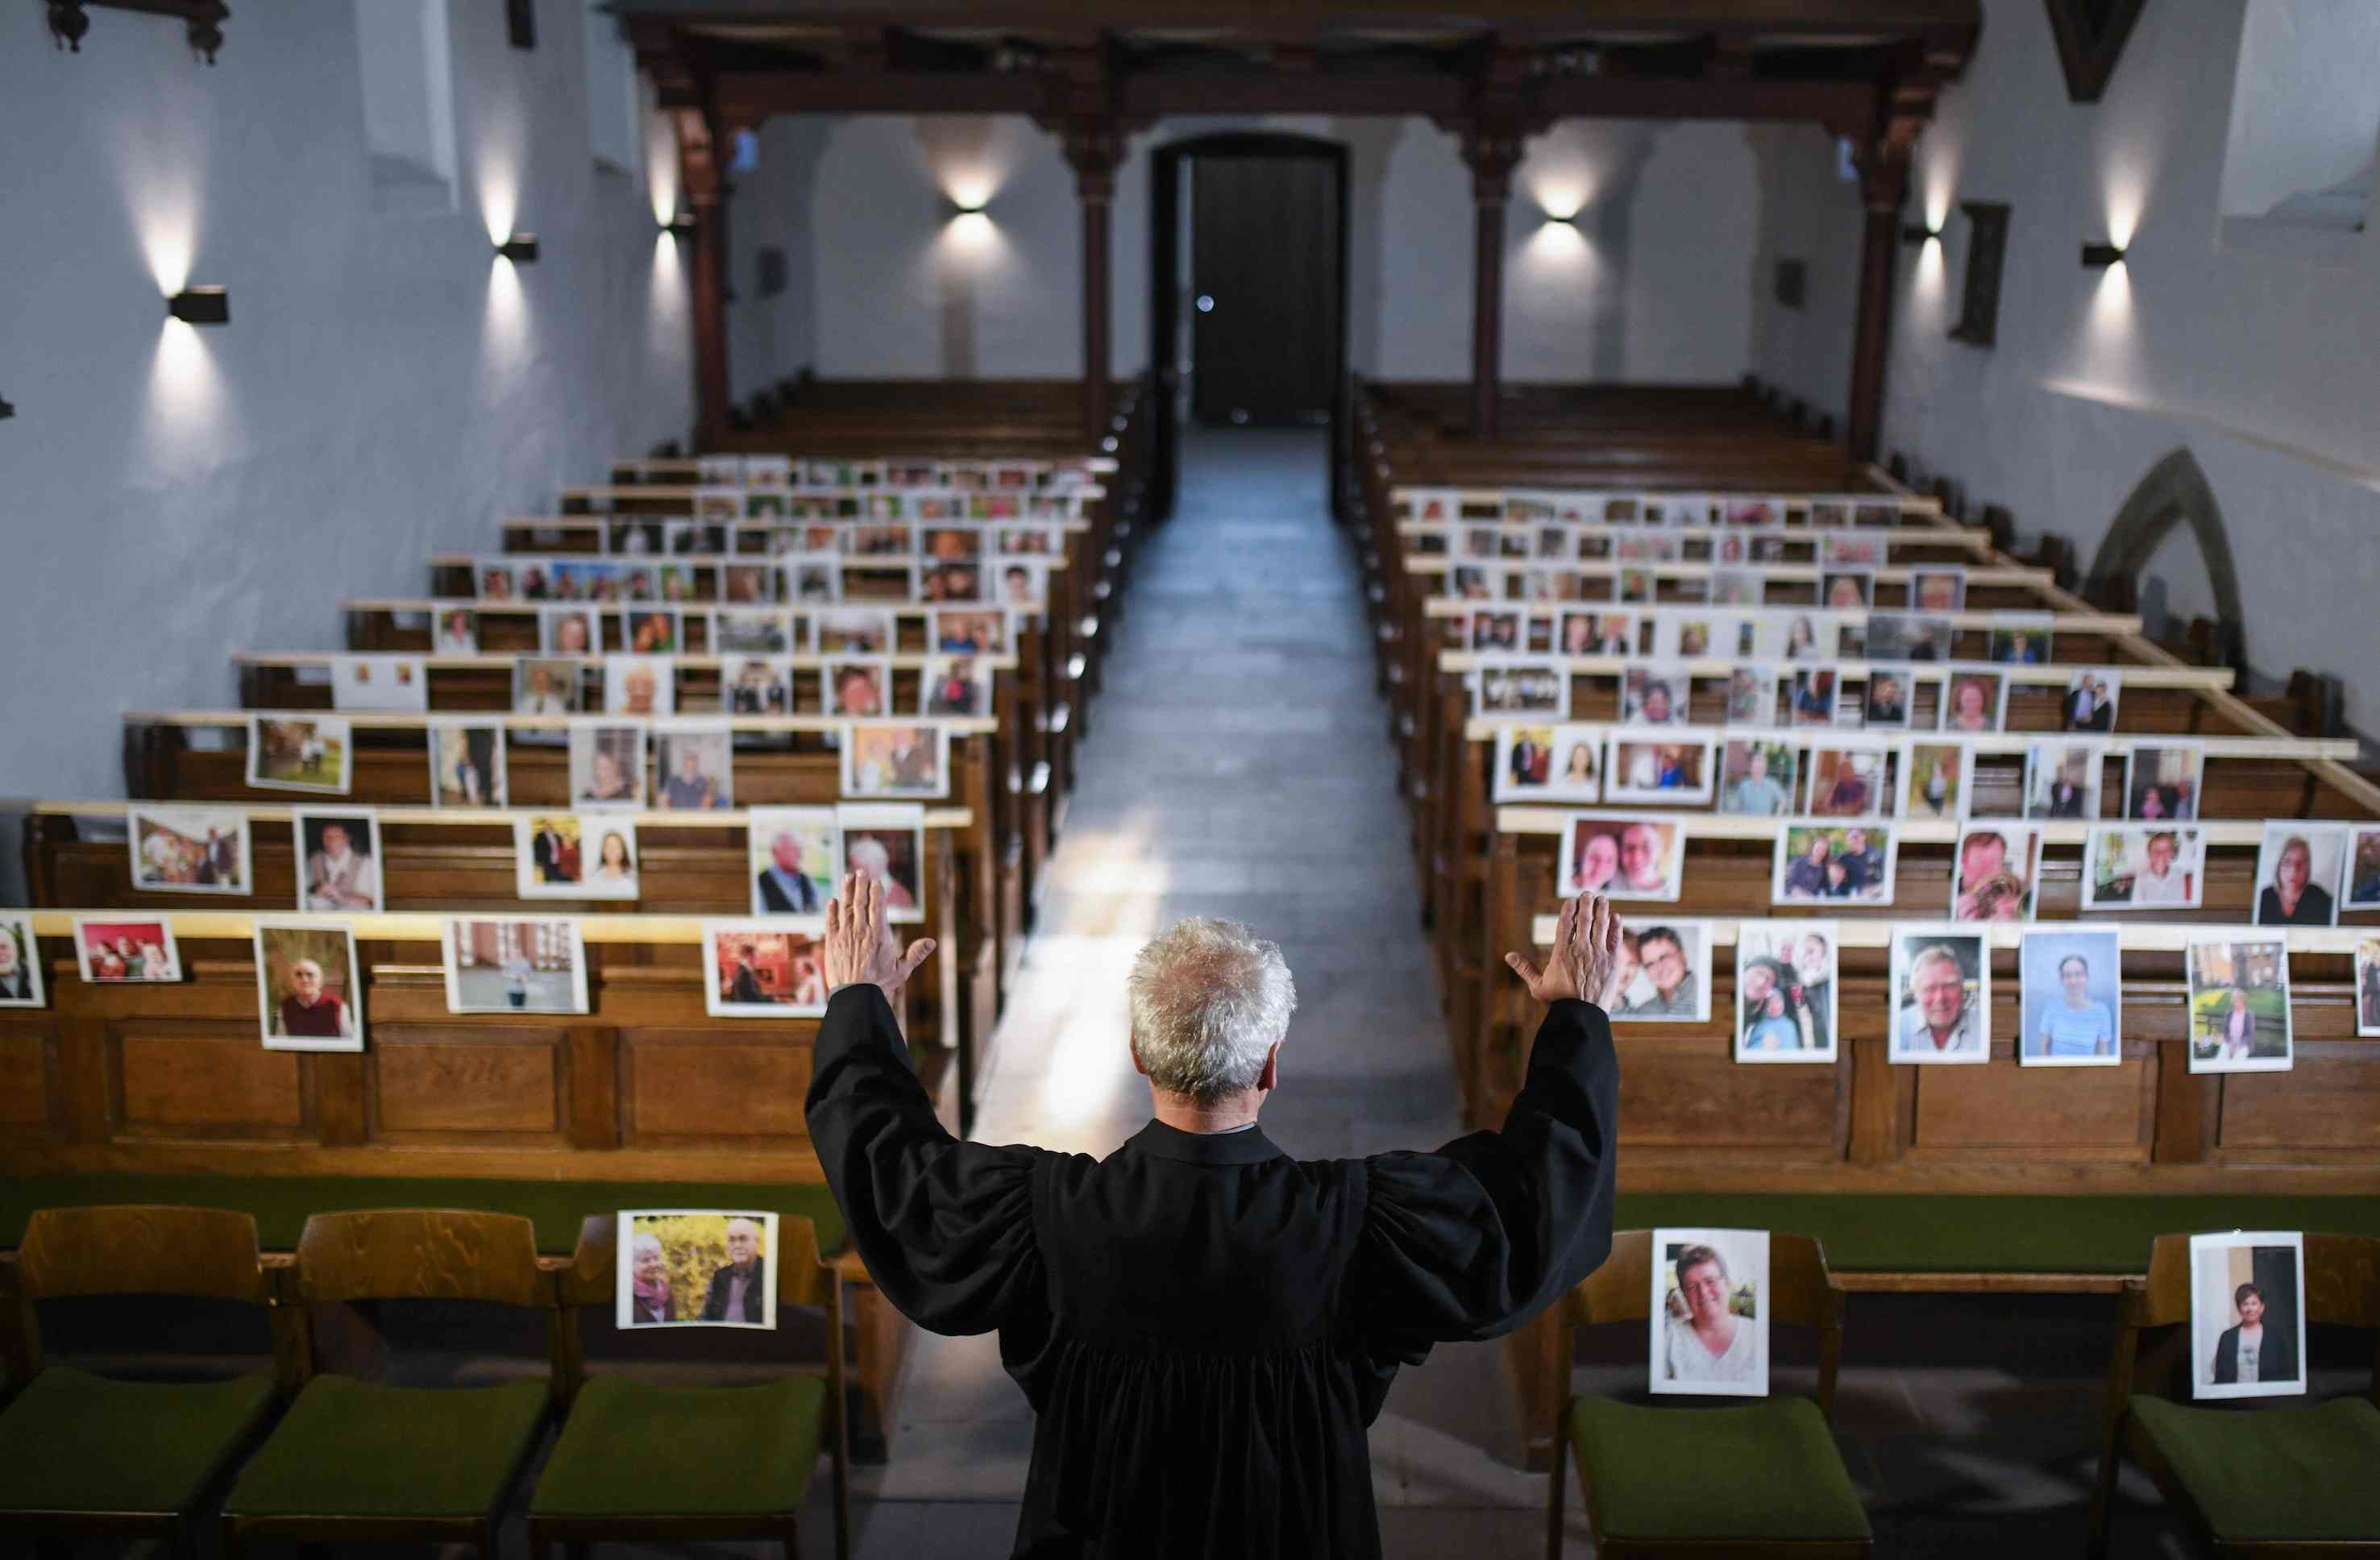 The evangelical pastor Klaus-Martin Pothmann stands in front of photos of believers who were asked to send in pictures to represent them among the pews at the St. Pankratius church in Hamm, western Germany, on April 9, 2020, due to the spread of the novel coronavirus COVID-19. — AFP